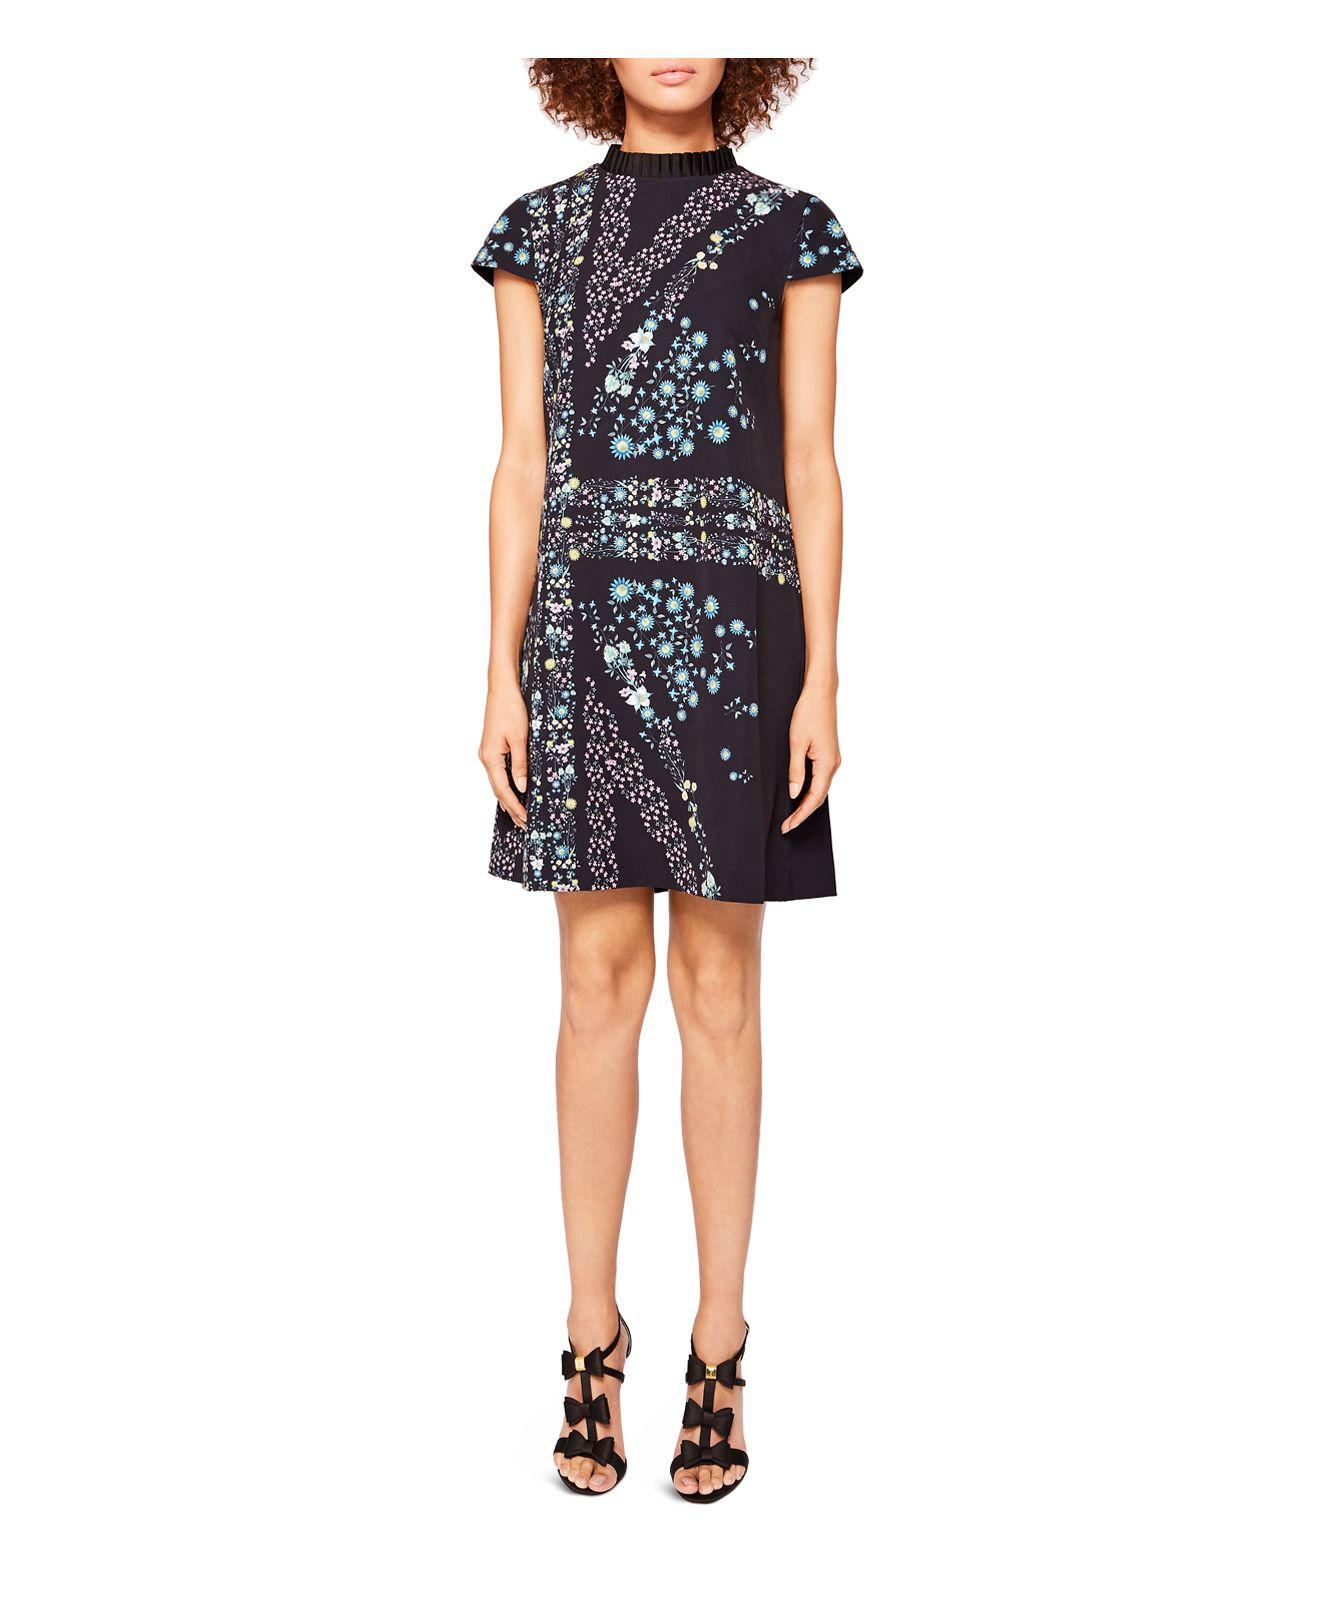 86cee772ef8805 Gallery. Previously sold at  Bloomingdale s · Women s Tunic Dresses ...